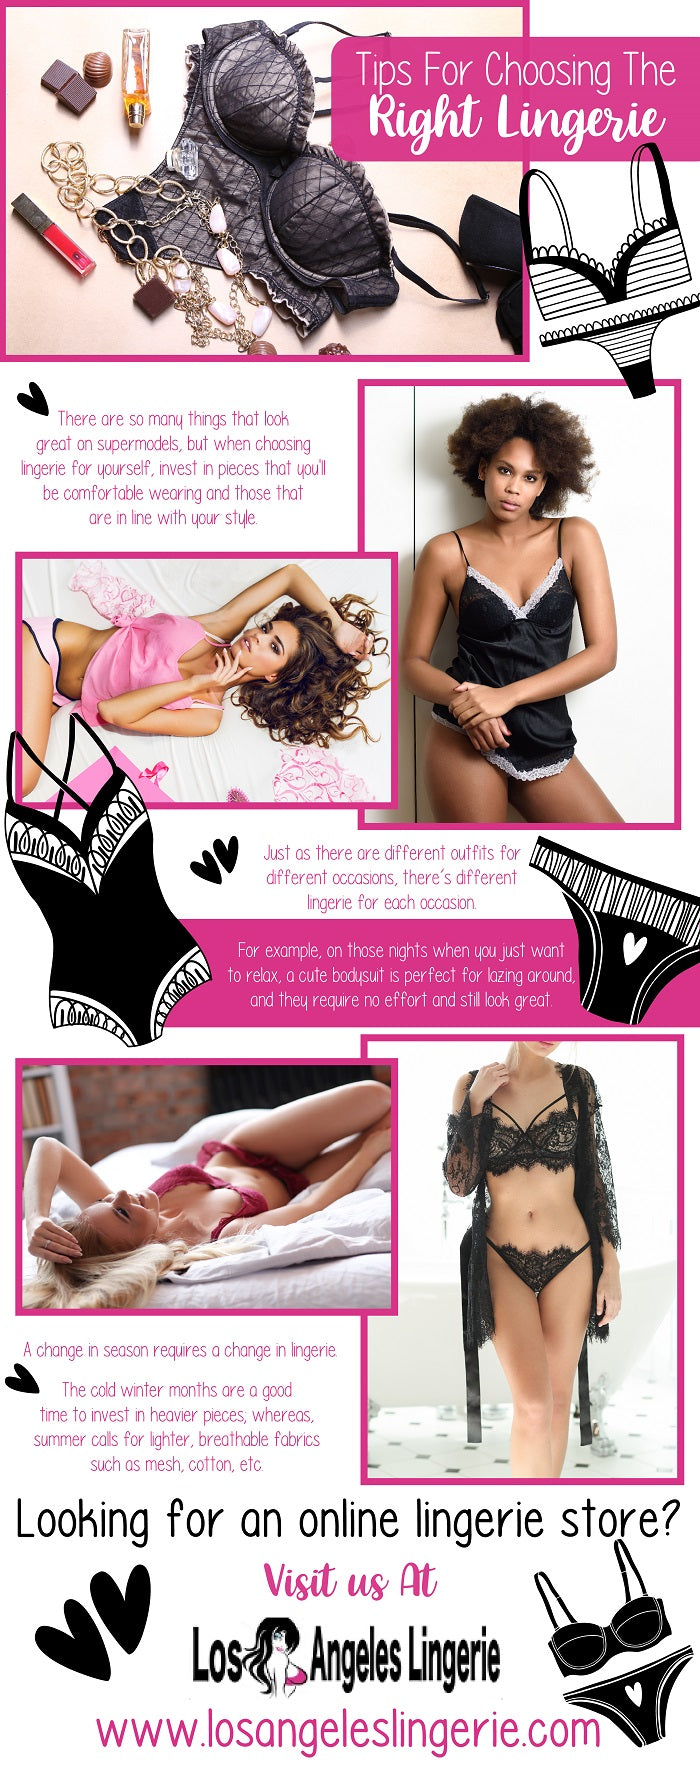 here are few tips for choosing the right lingerie.